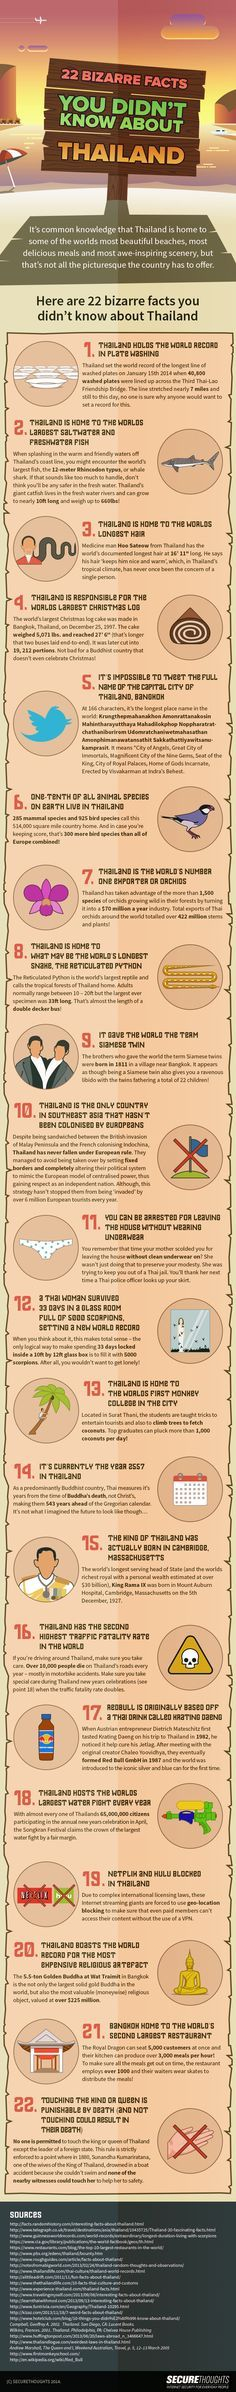 Bizarre Facts You Didn't Know About Thailand